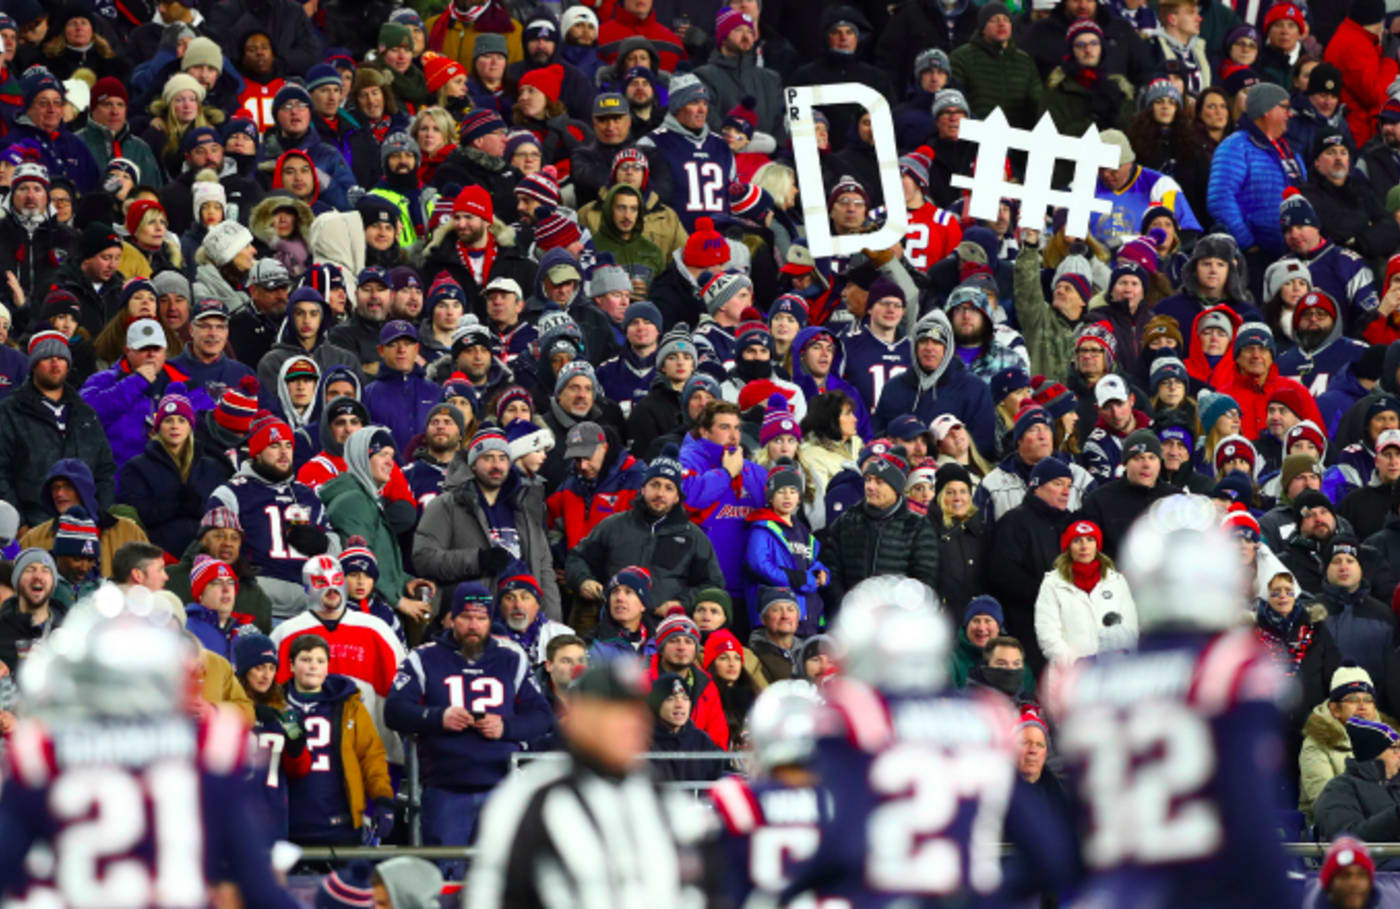 Fans hold a sign for the New England Patriots